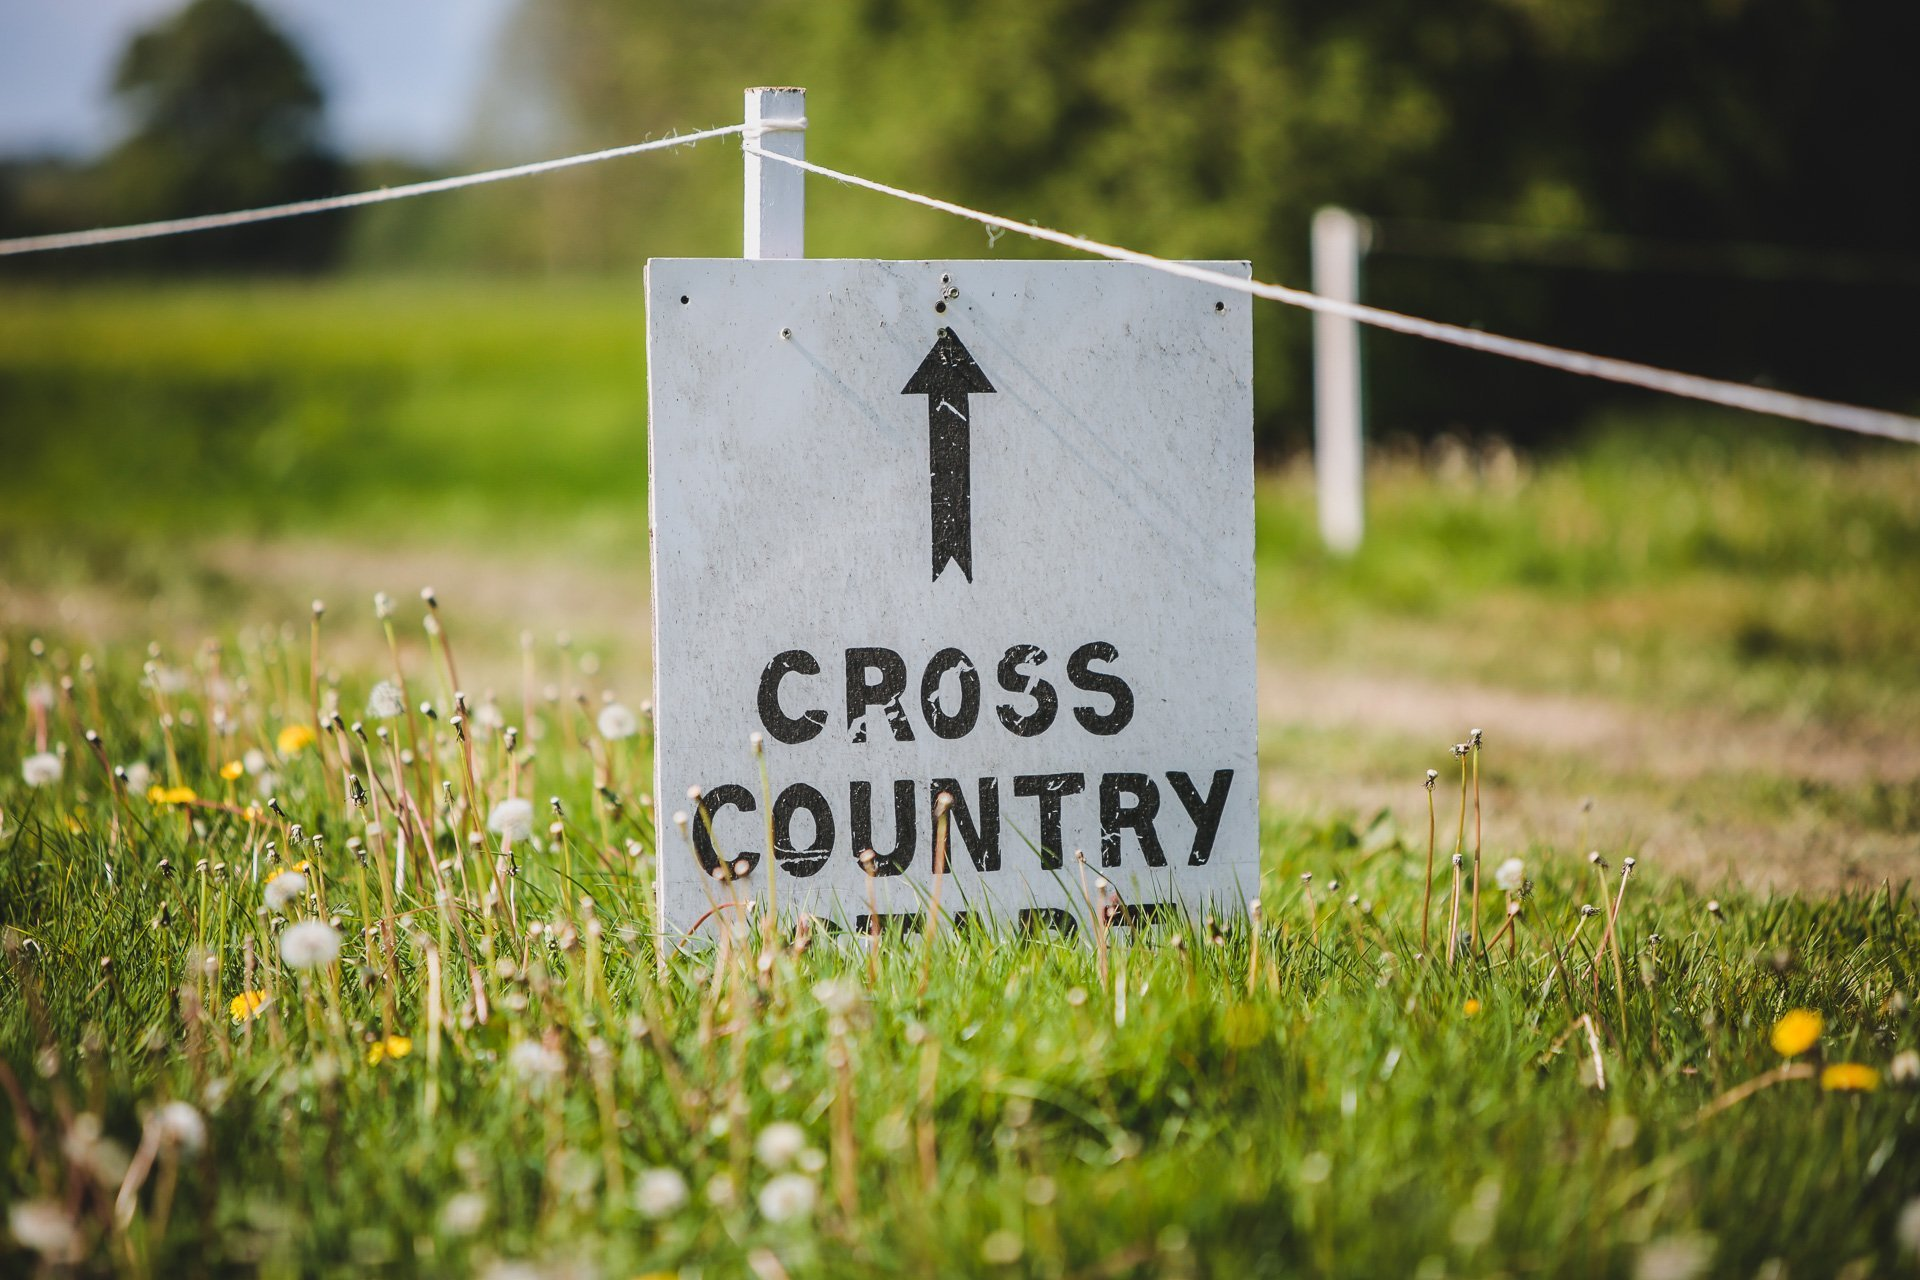 cross country at Llanymynech horse trials